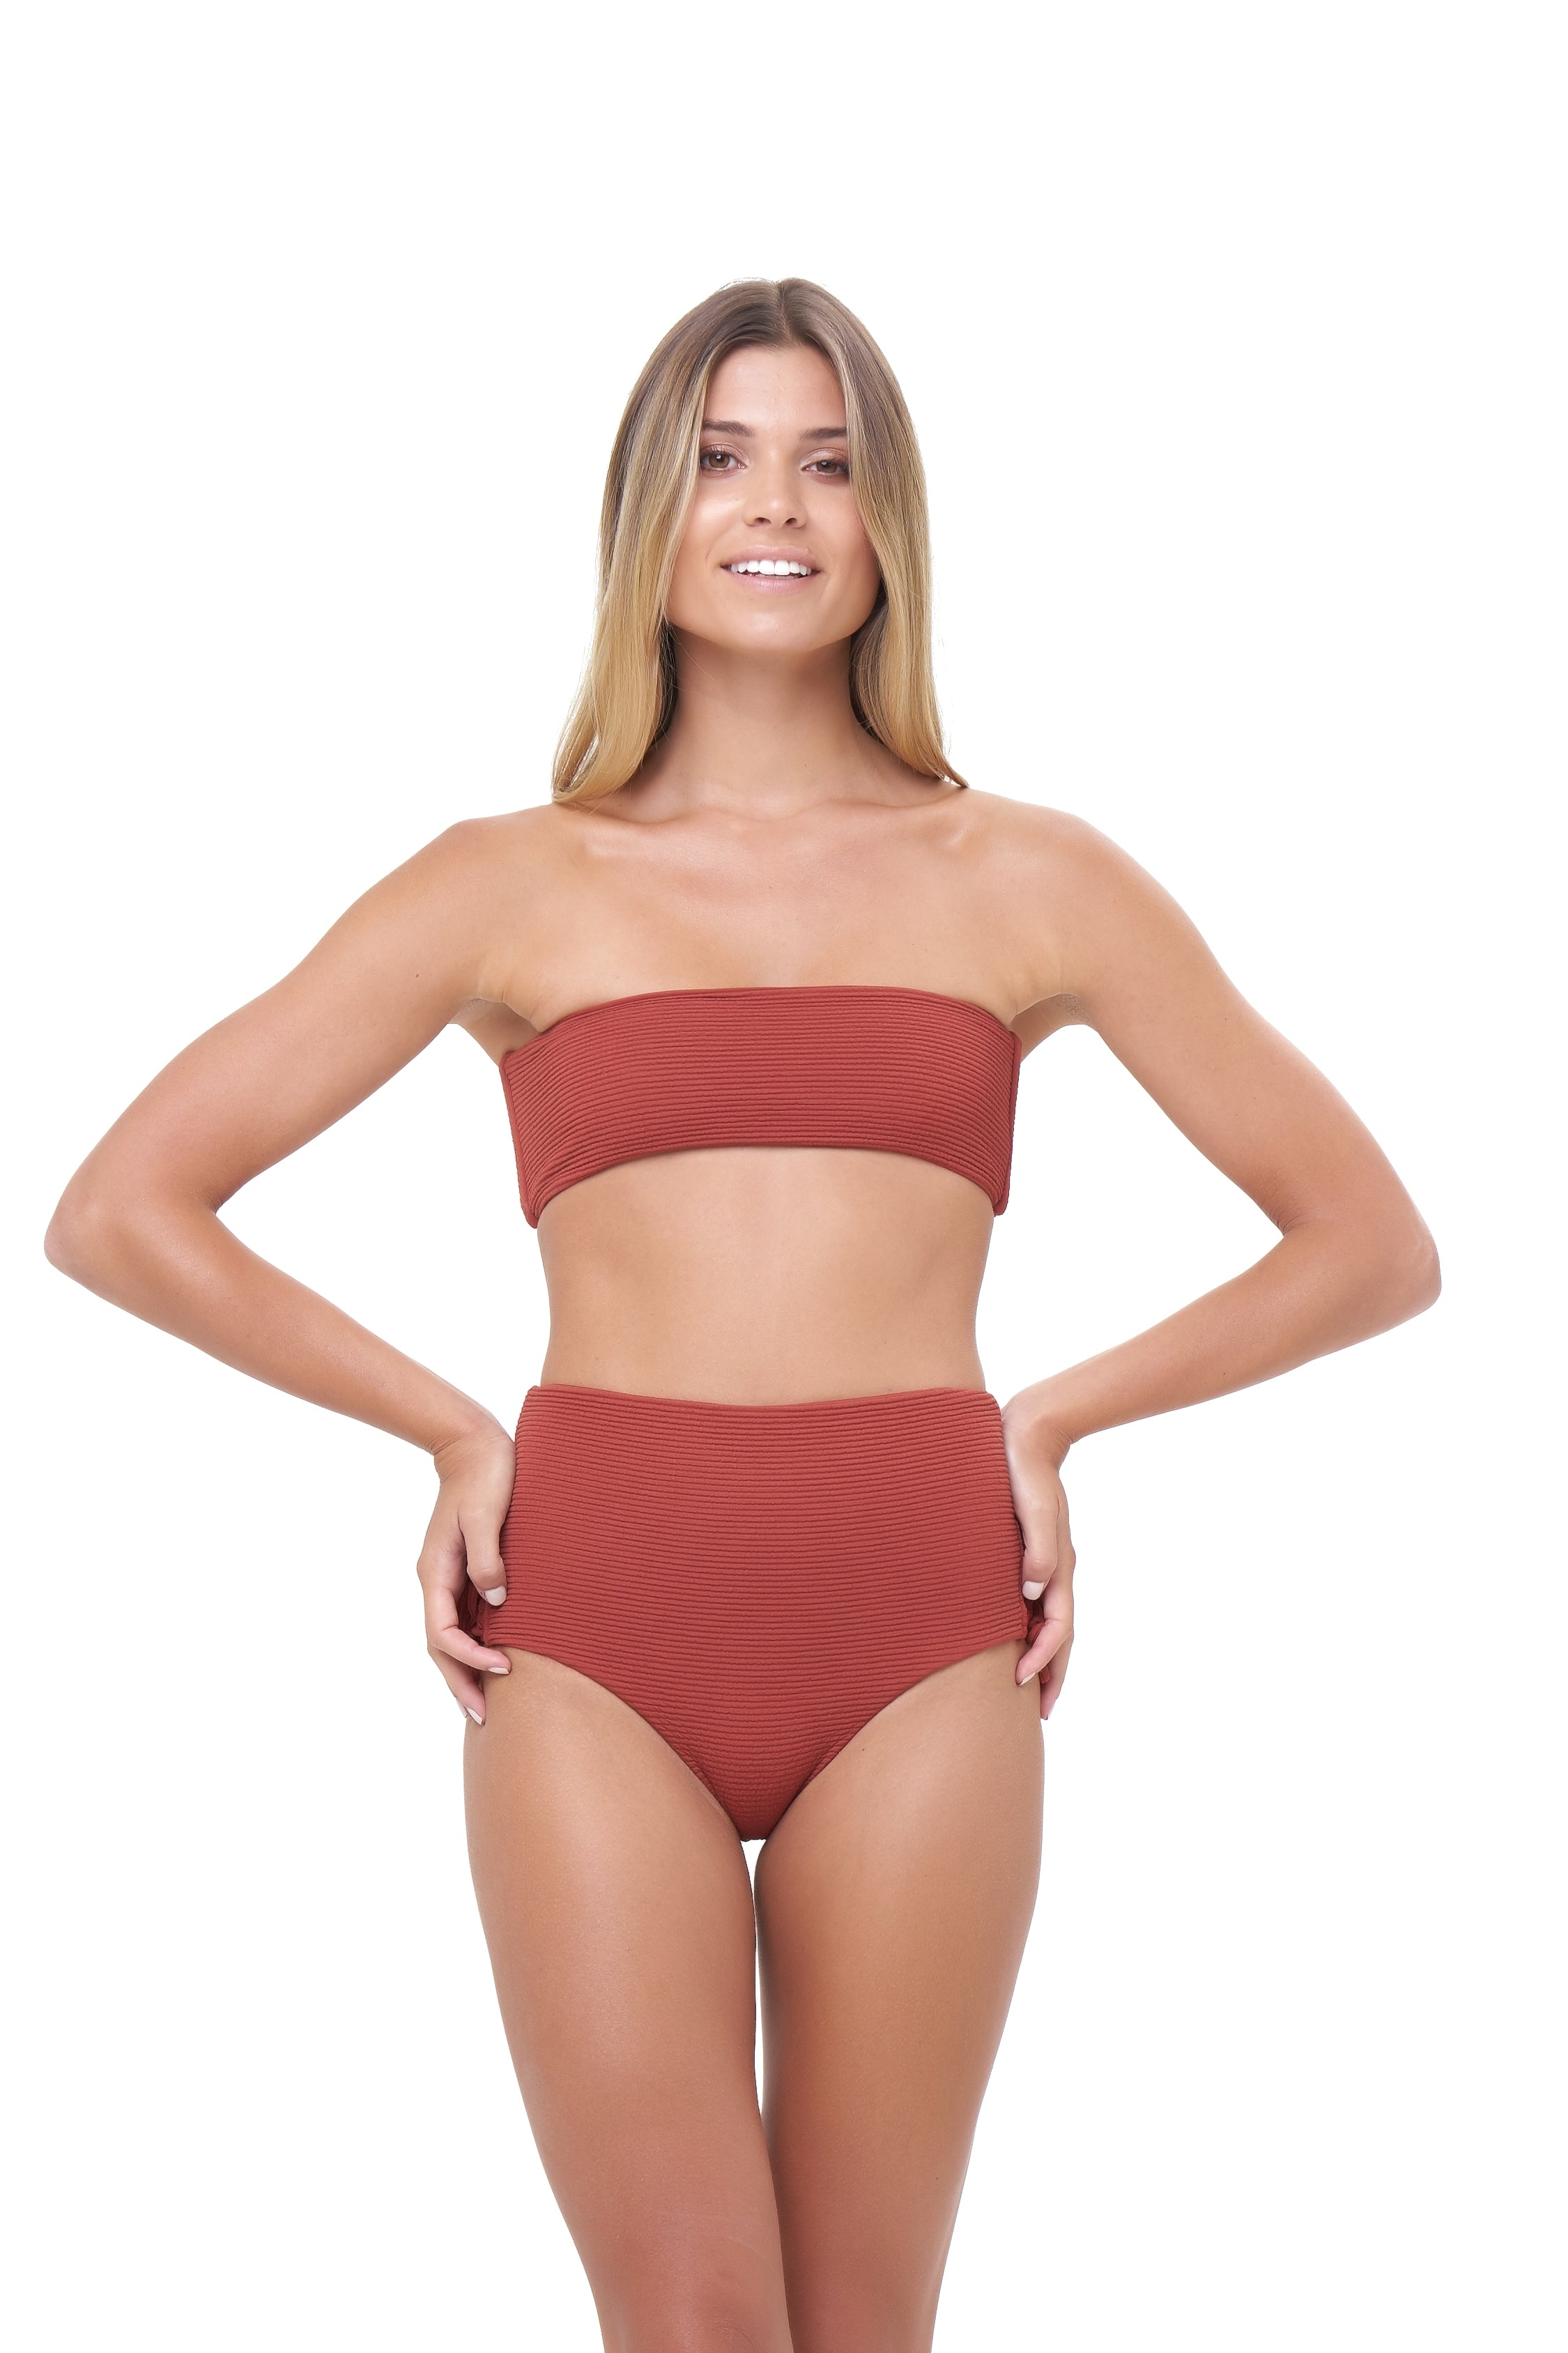 Storm Swimwear - Ravello - Plain Bandeu Bikini Top in Storm Le Nuage Rouille